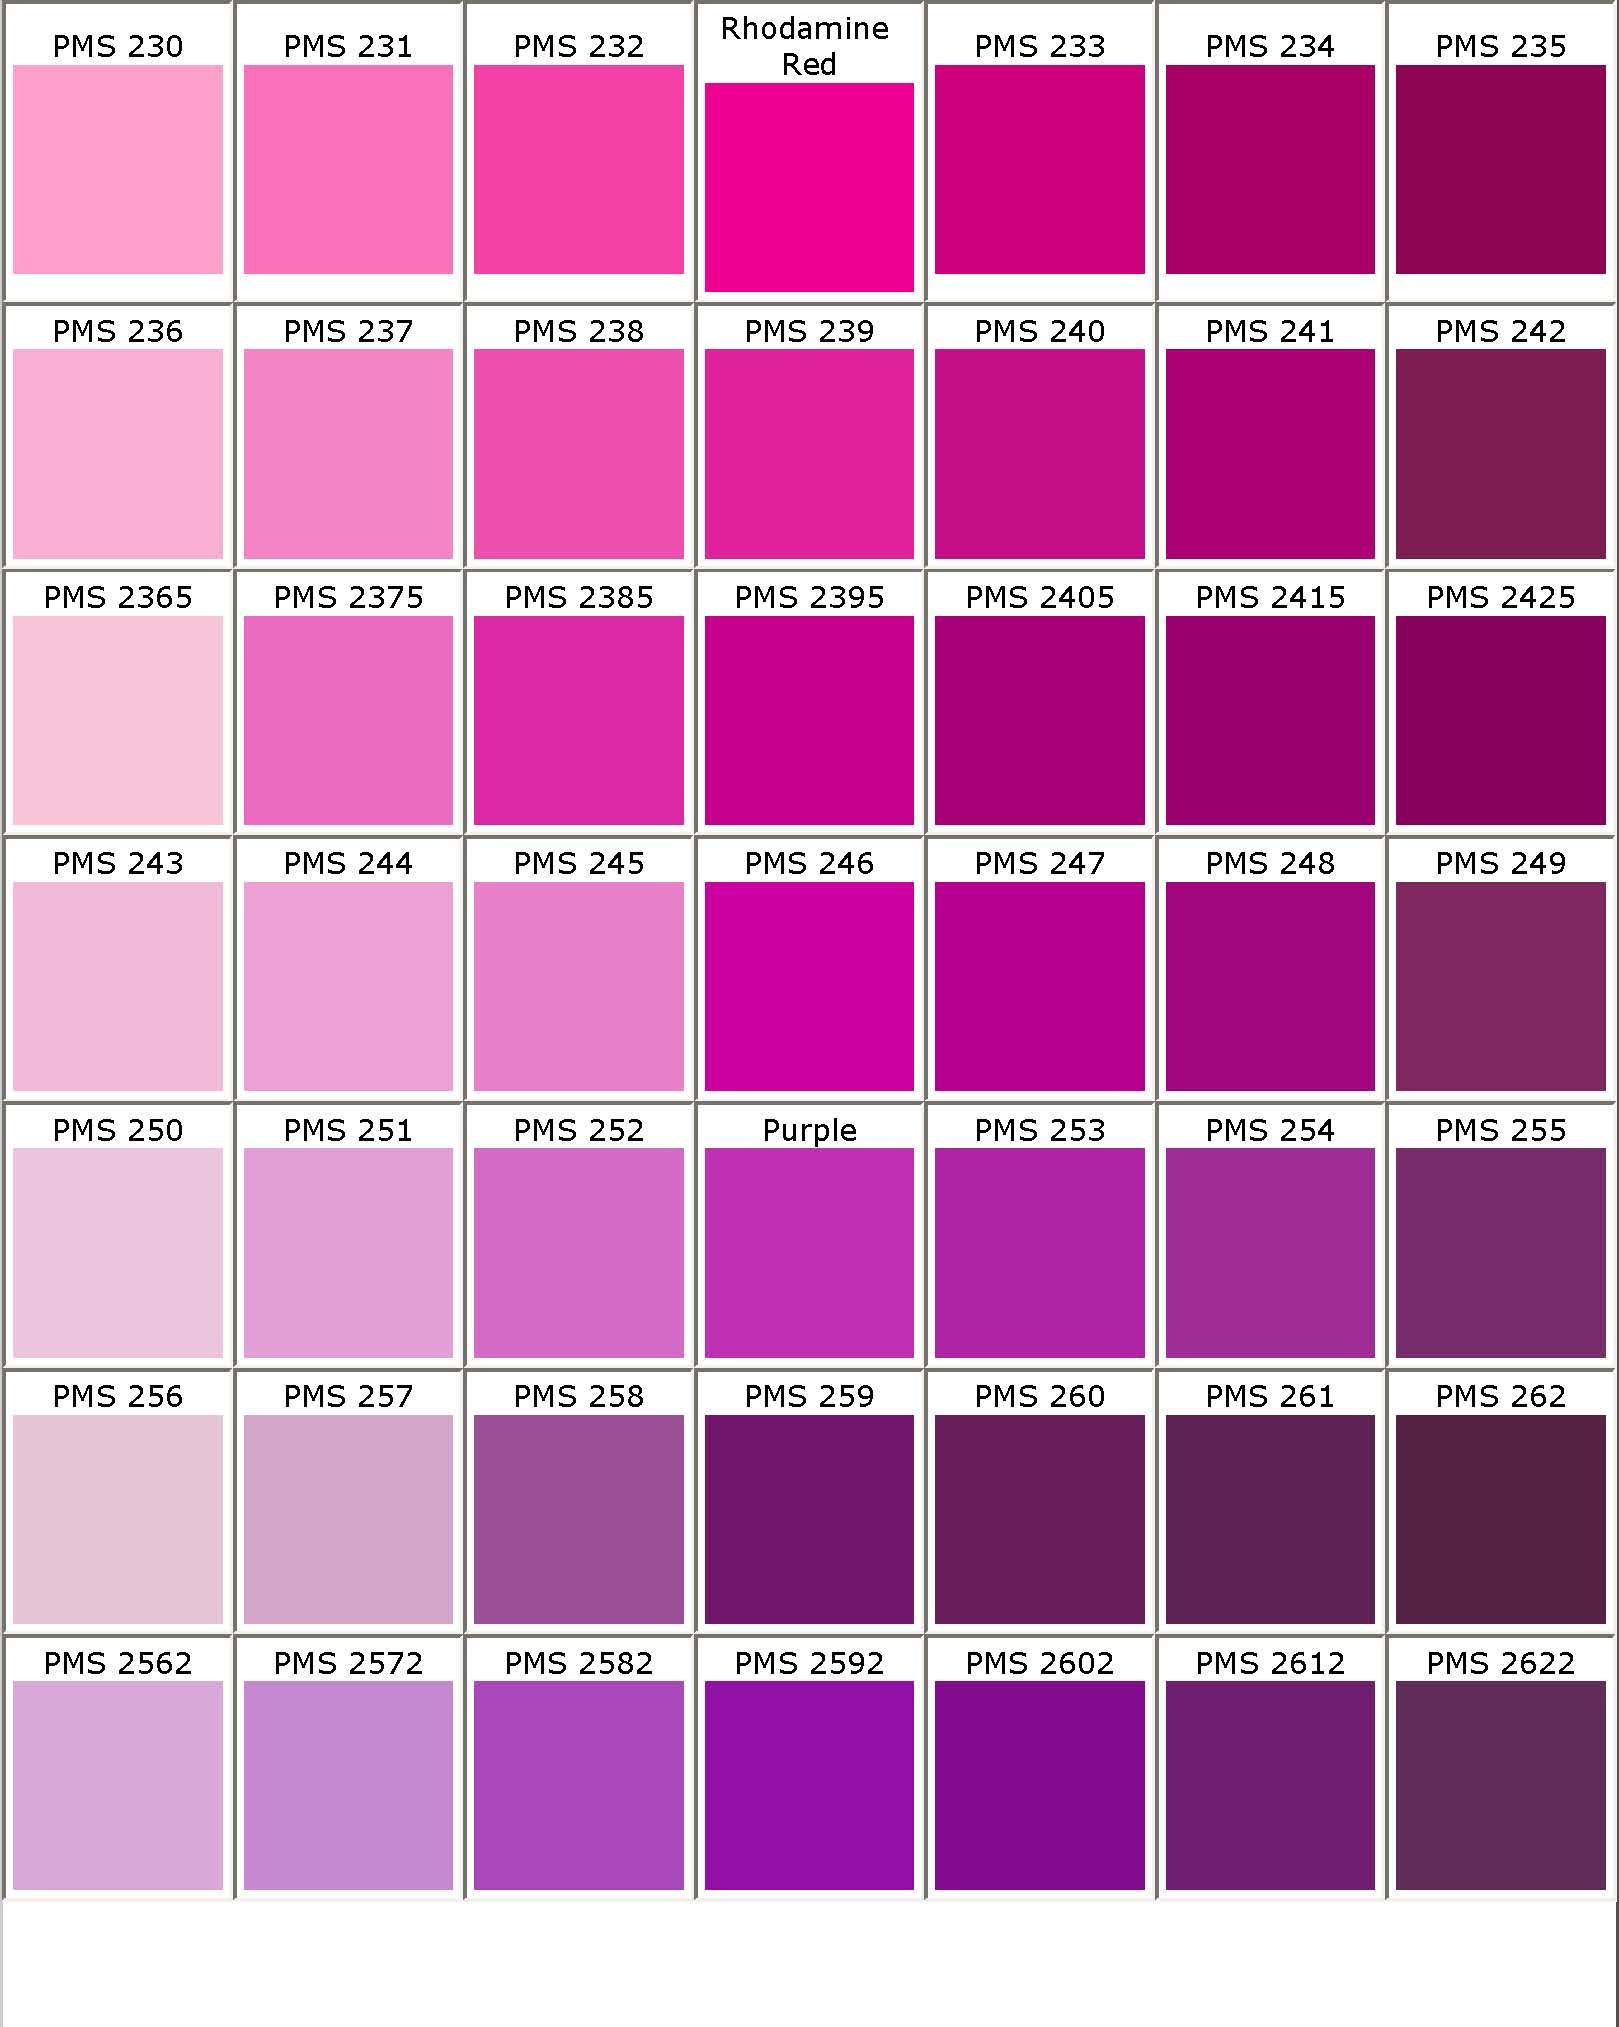 Pantone R Matching System Color Chart PMS Colors Used For Printing Use This Guide To Assist